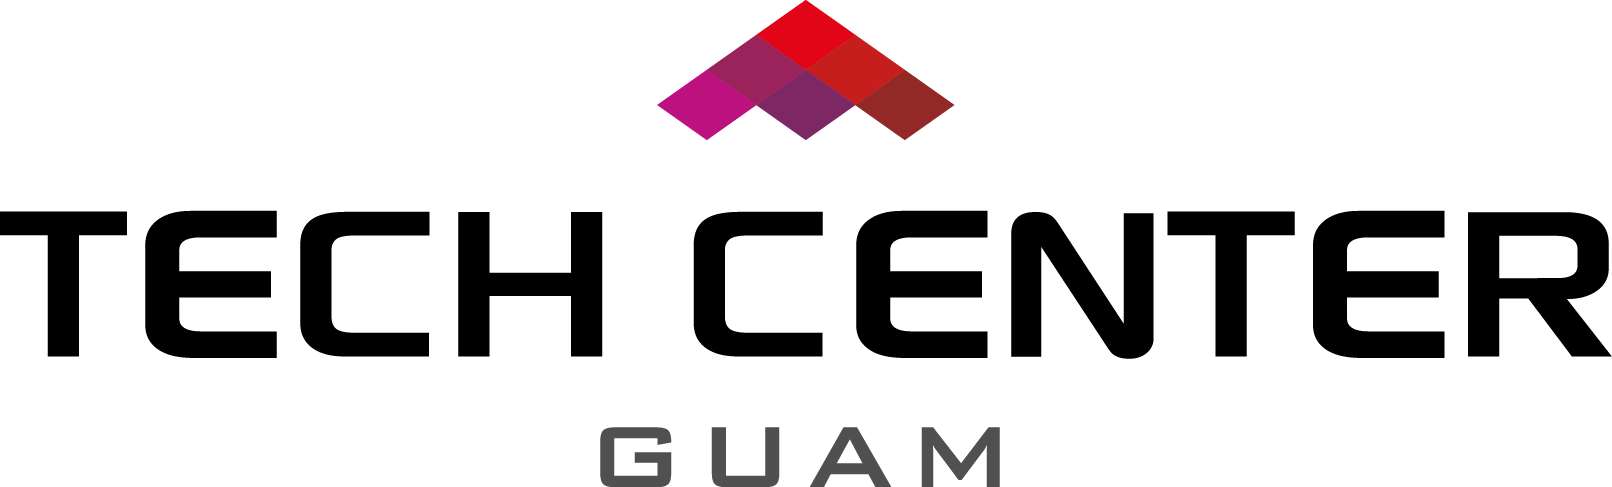 Tech Center Guam logo